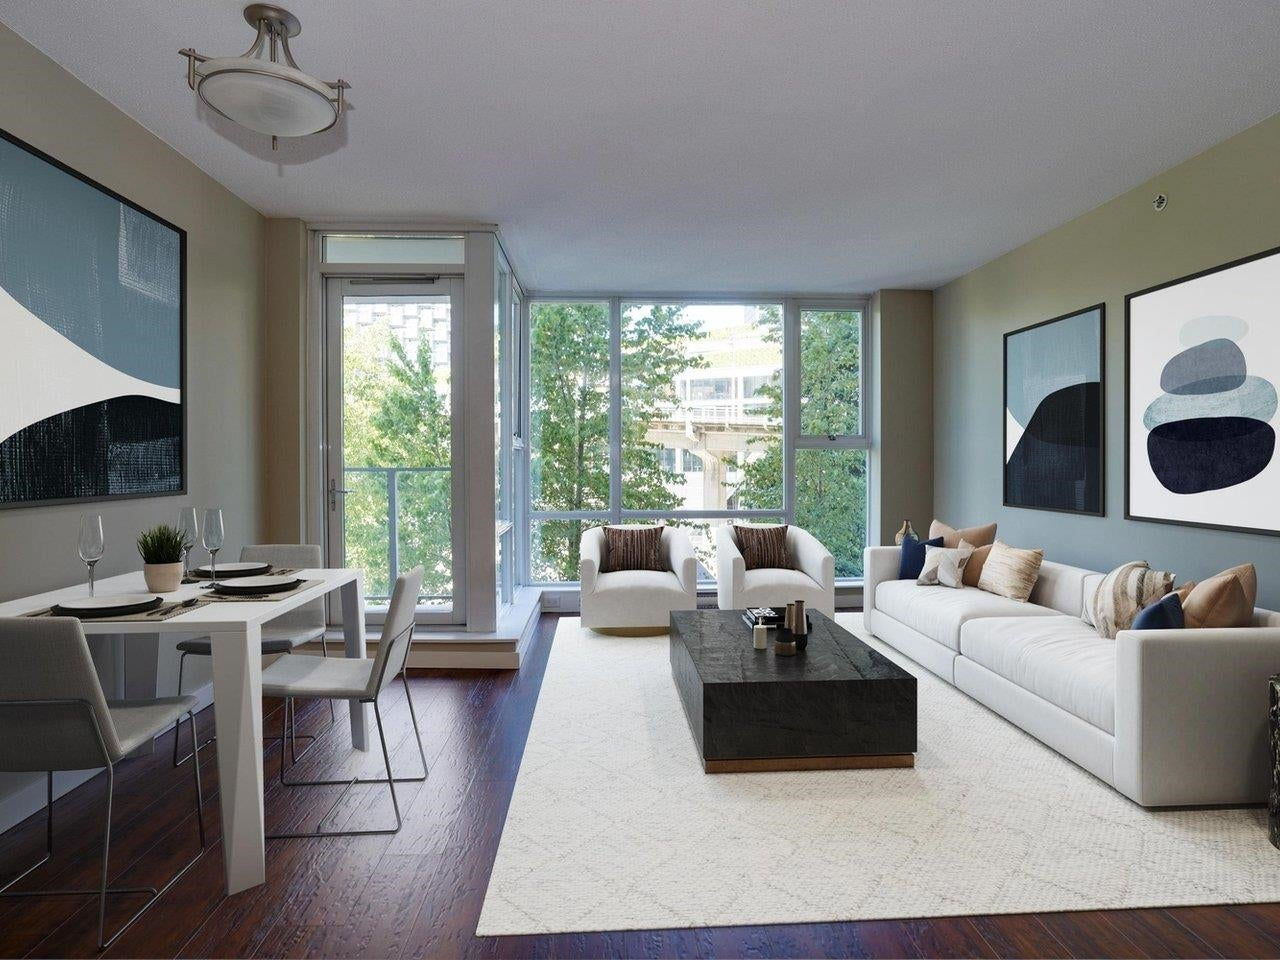 305 550 PACIFIC STREET - Yaletown Apartment/Condo for sale, 2 Bedrooms (R2614364) - #1